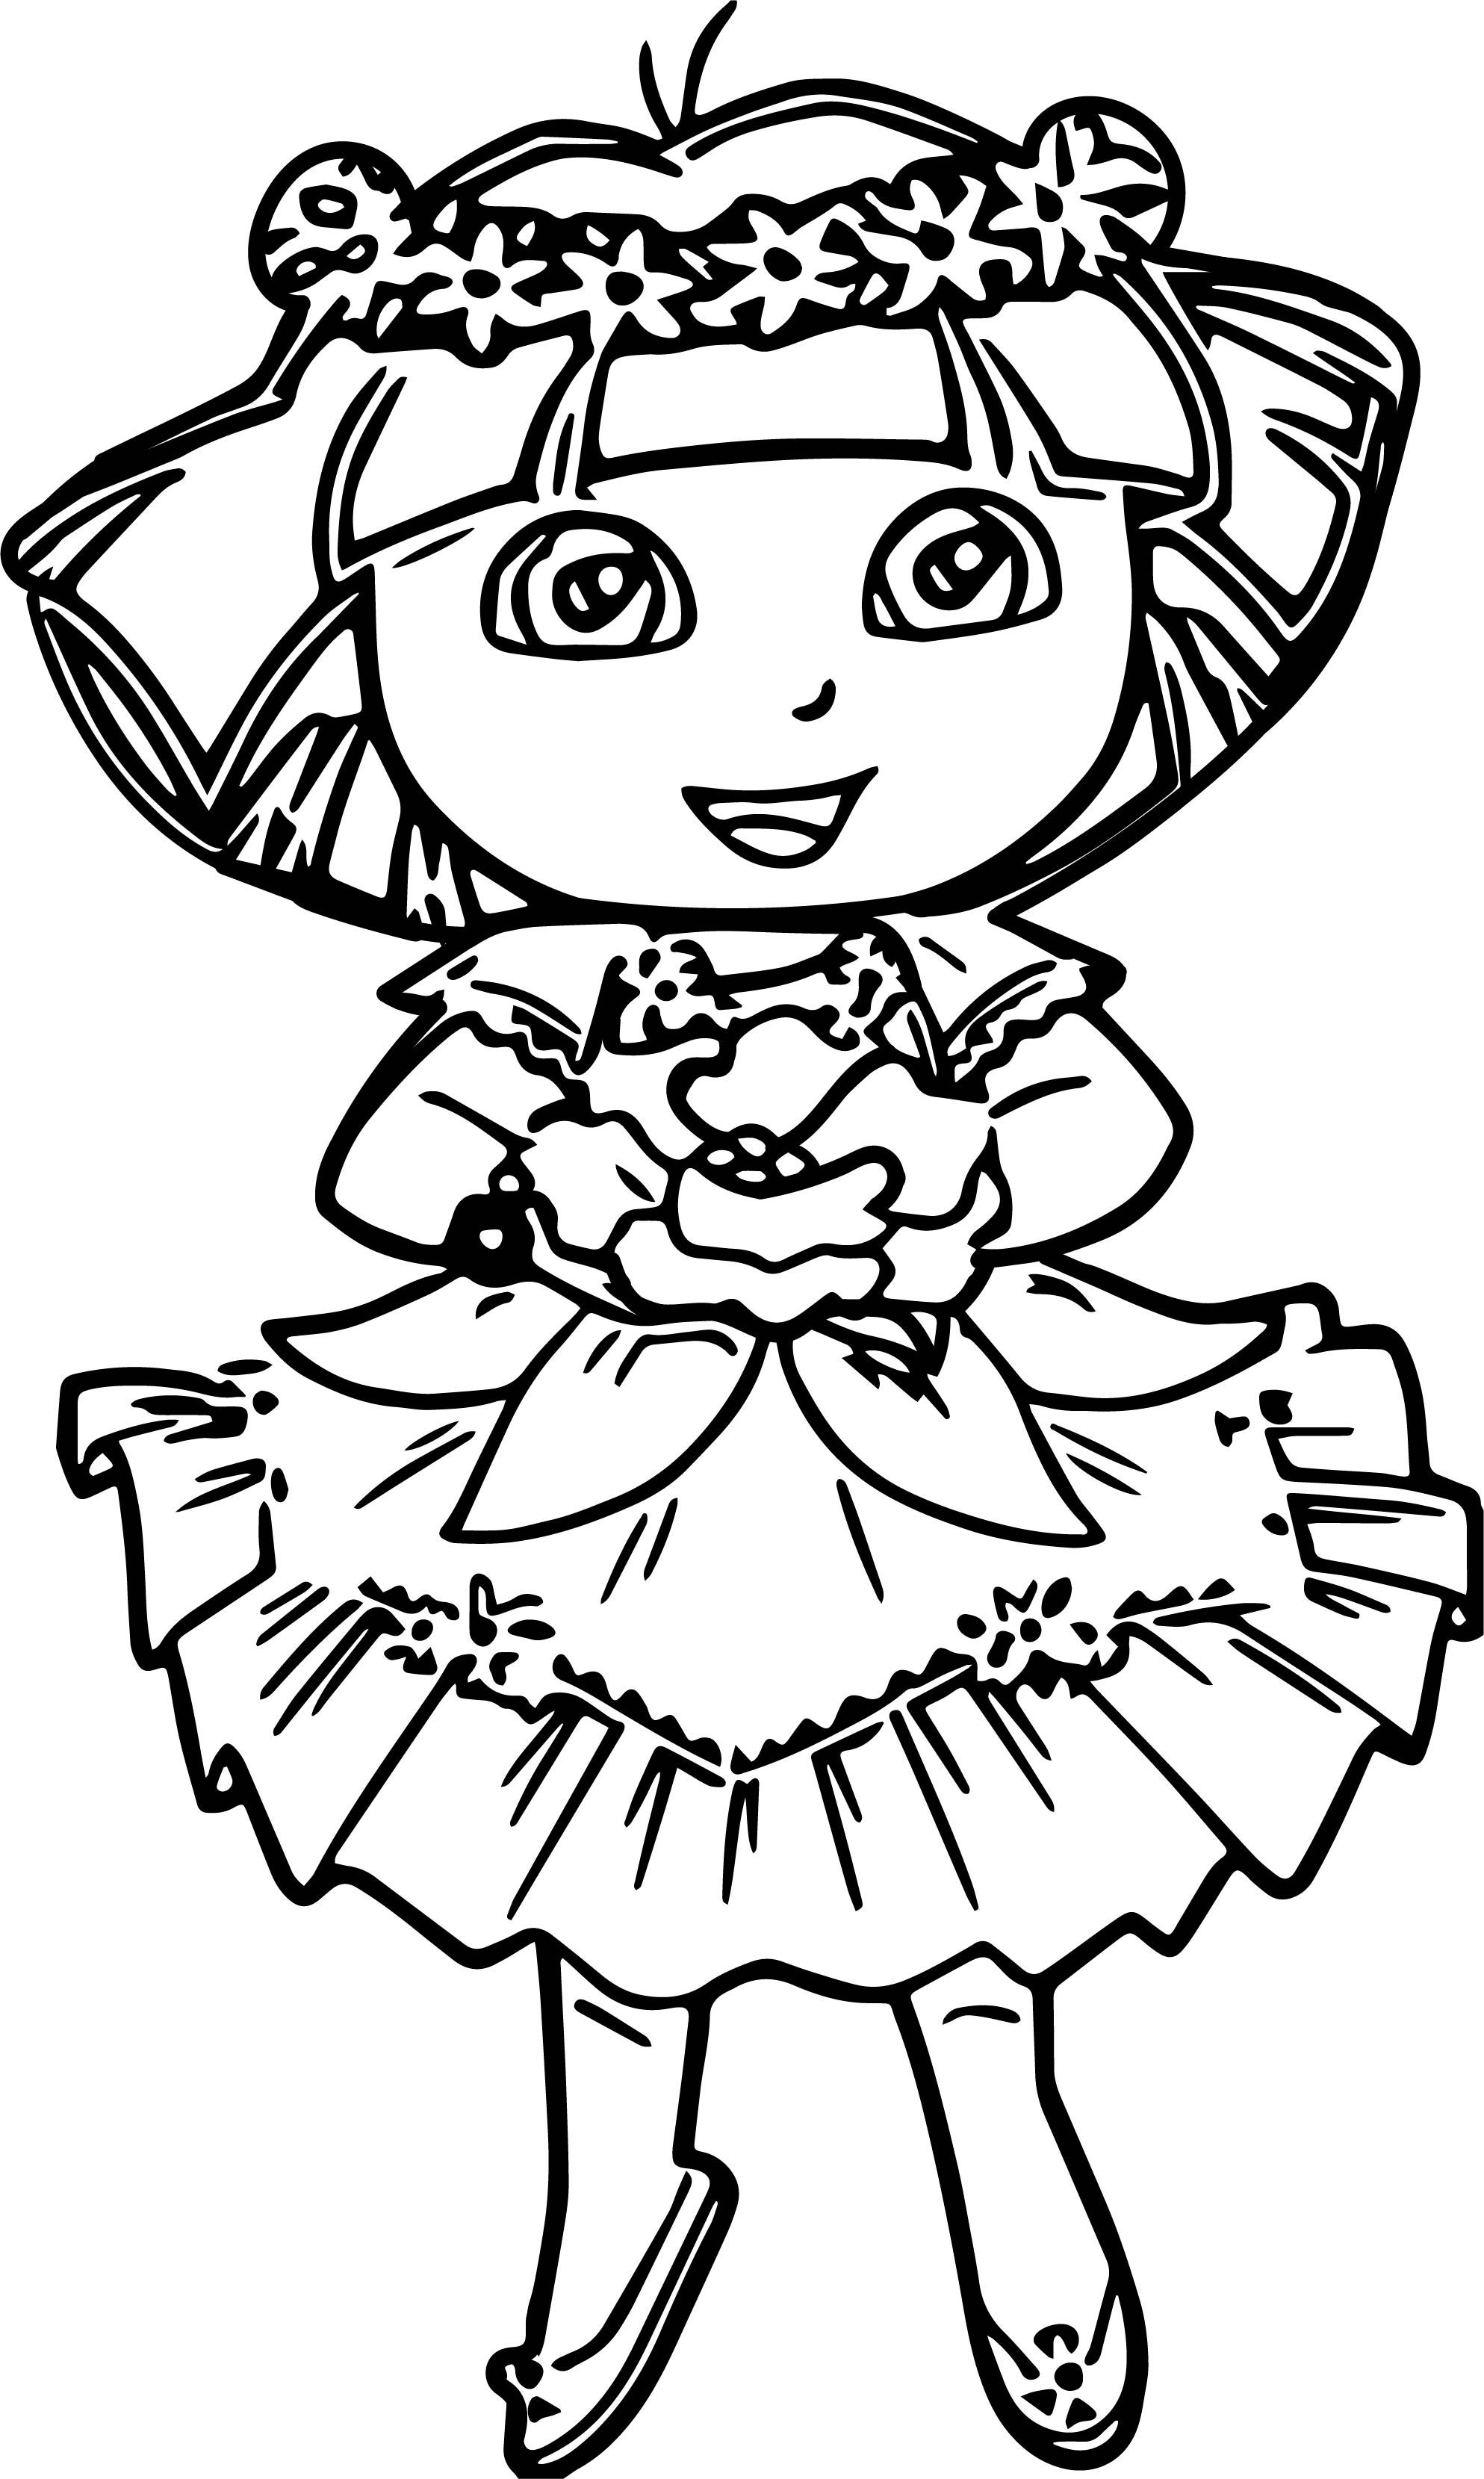 Dora In Enchanted Forest Dress Coloring Pages   wecoloringpage ...